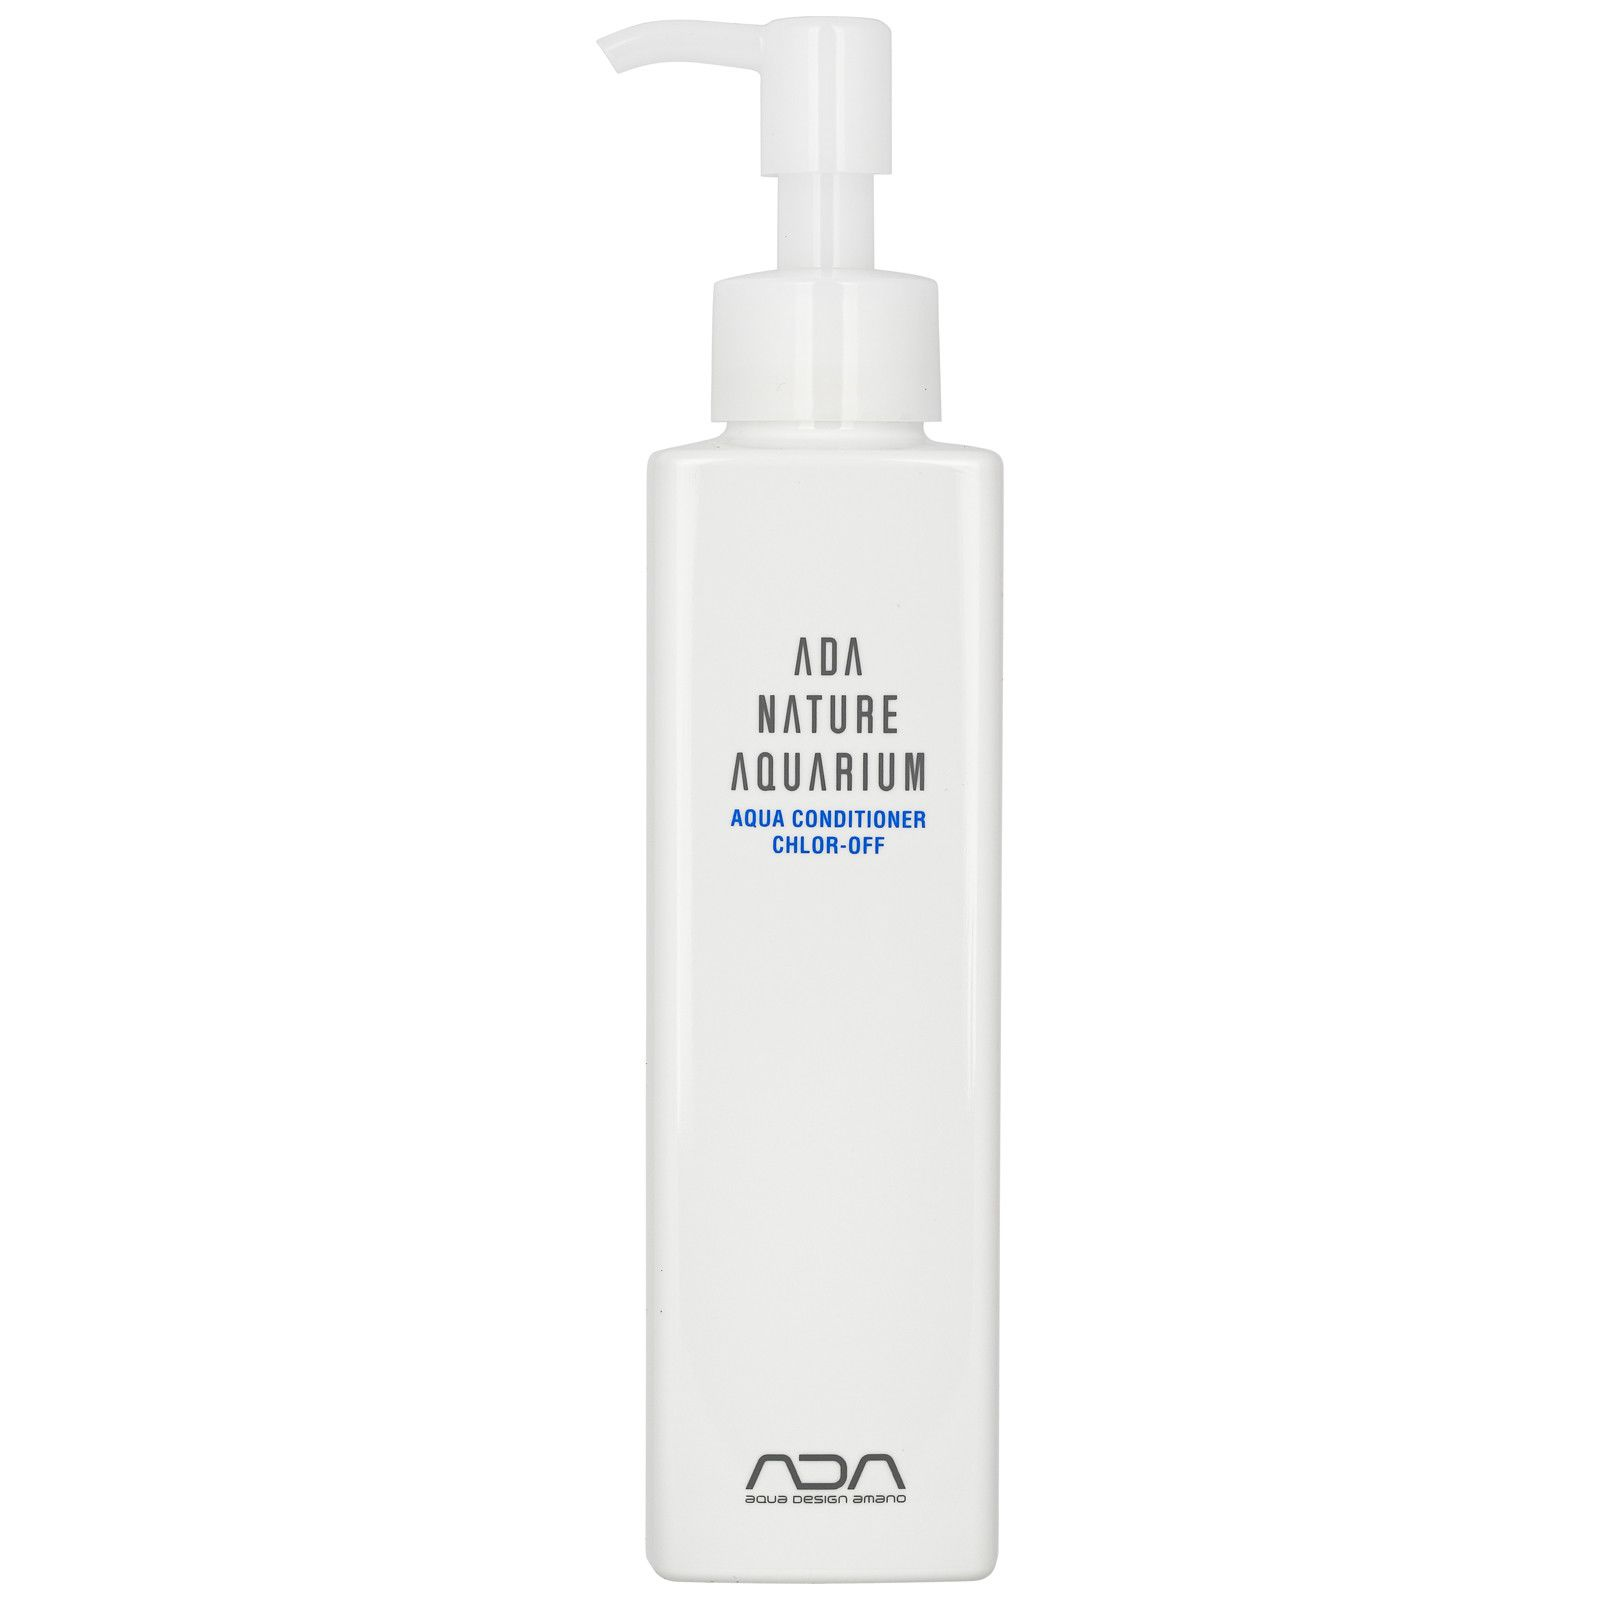 ADA - Aqua Conditioner - Chlor-Off